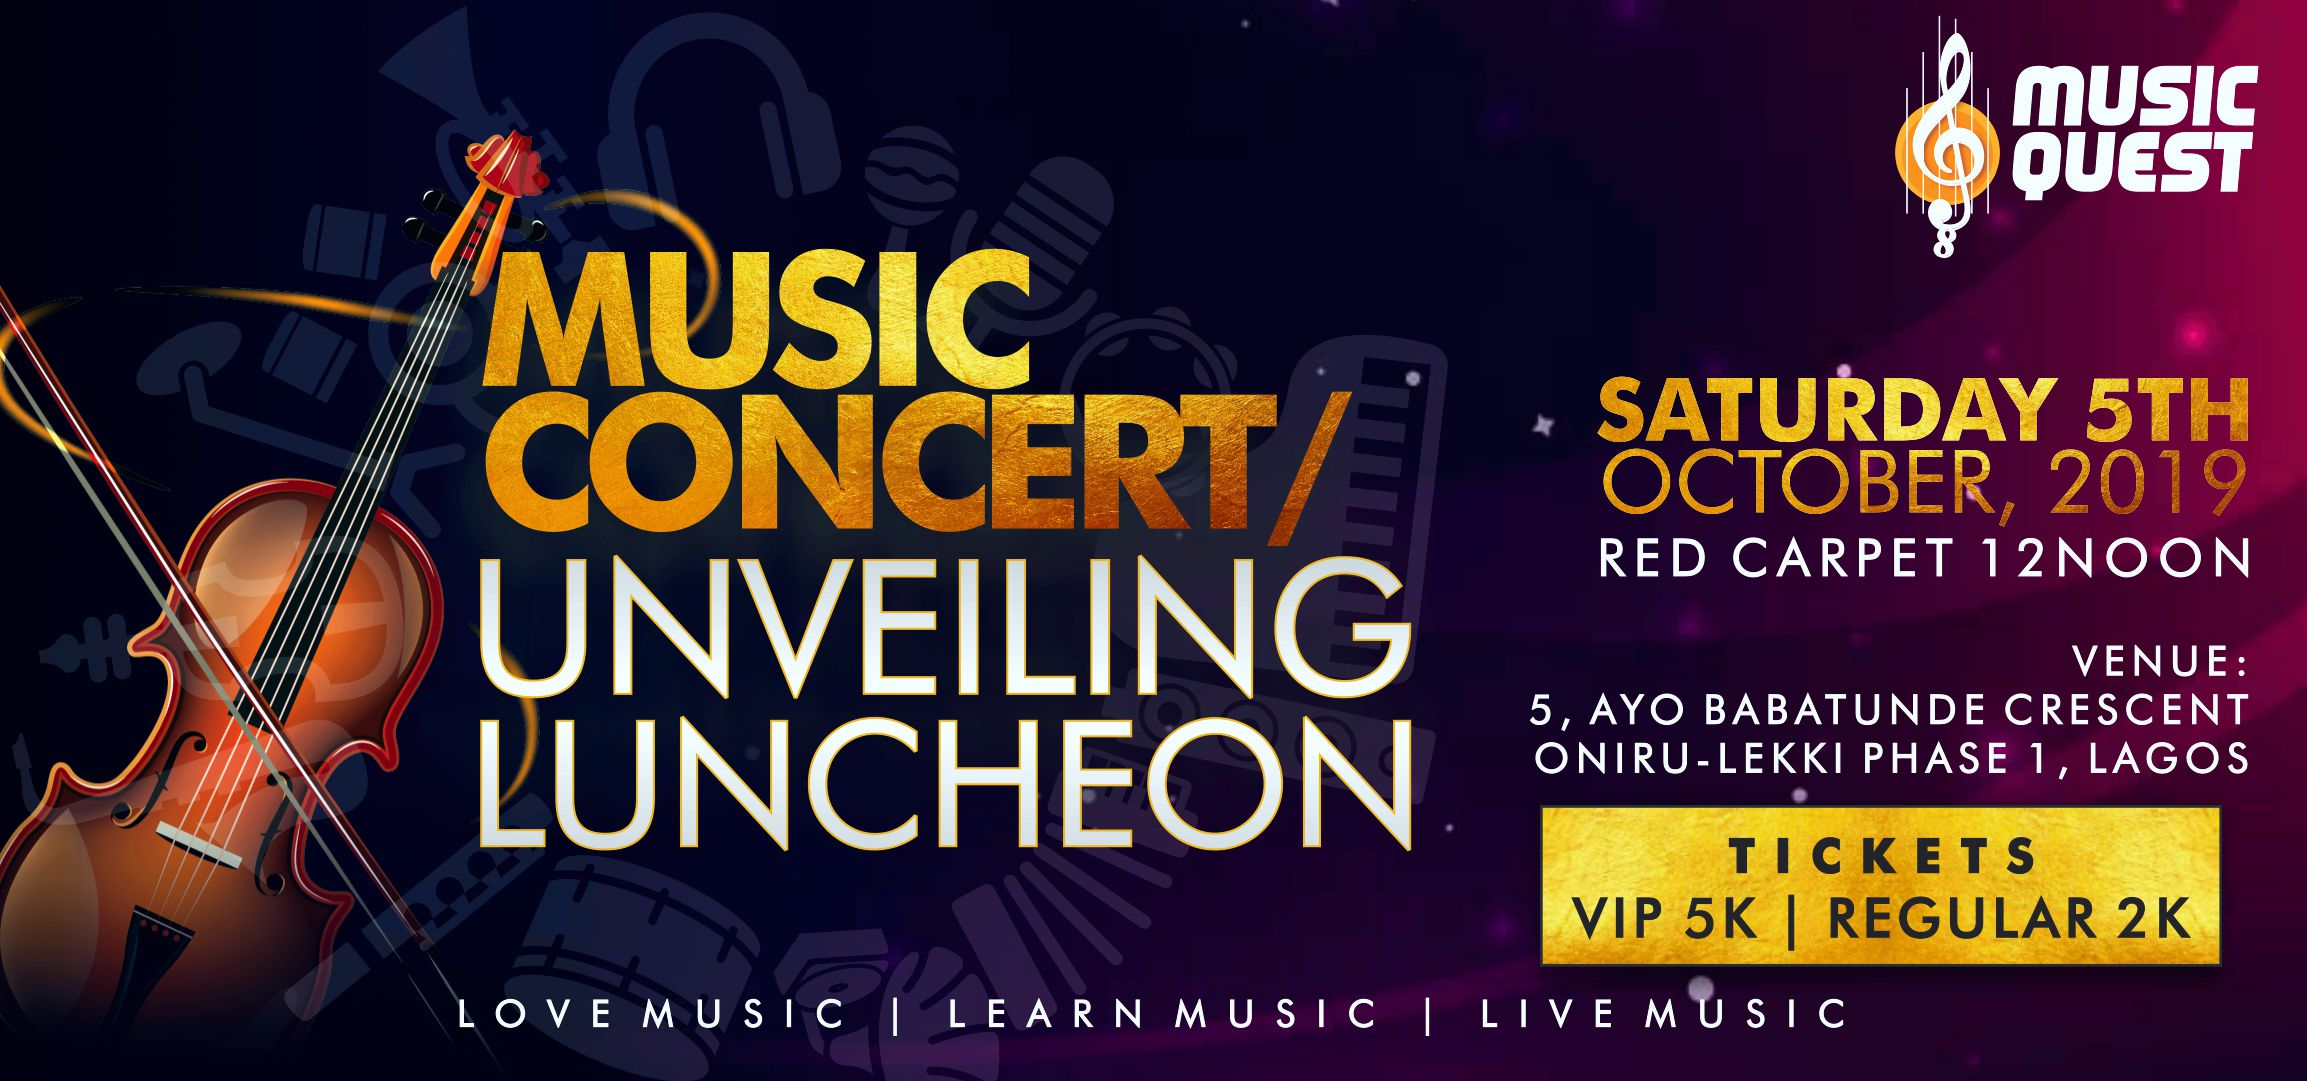 Music Concert & Unveiling Luncheon Post free event in Nigeria using tickethub.ng, buy and sell tickets to event